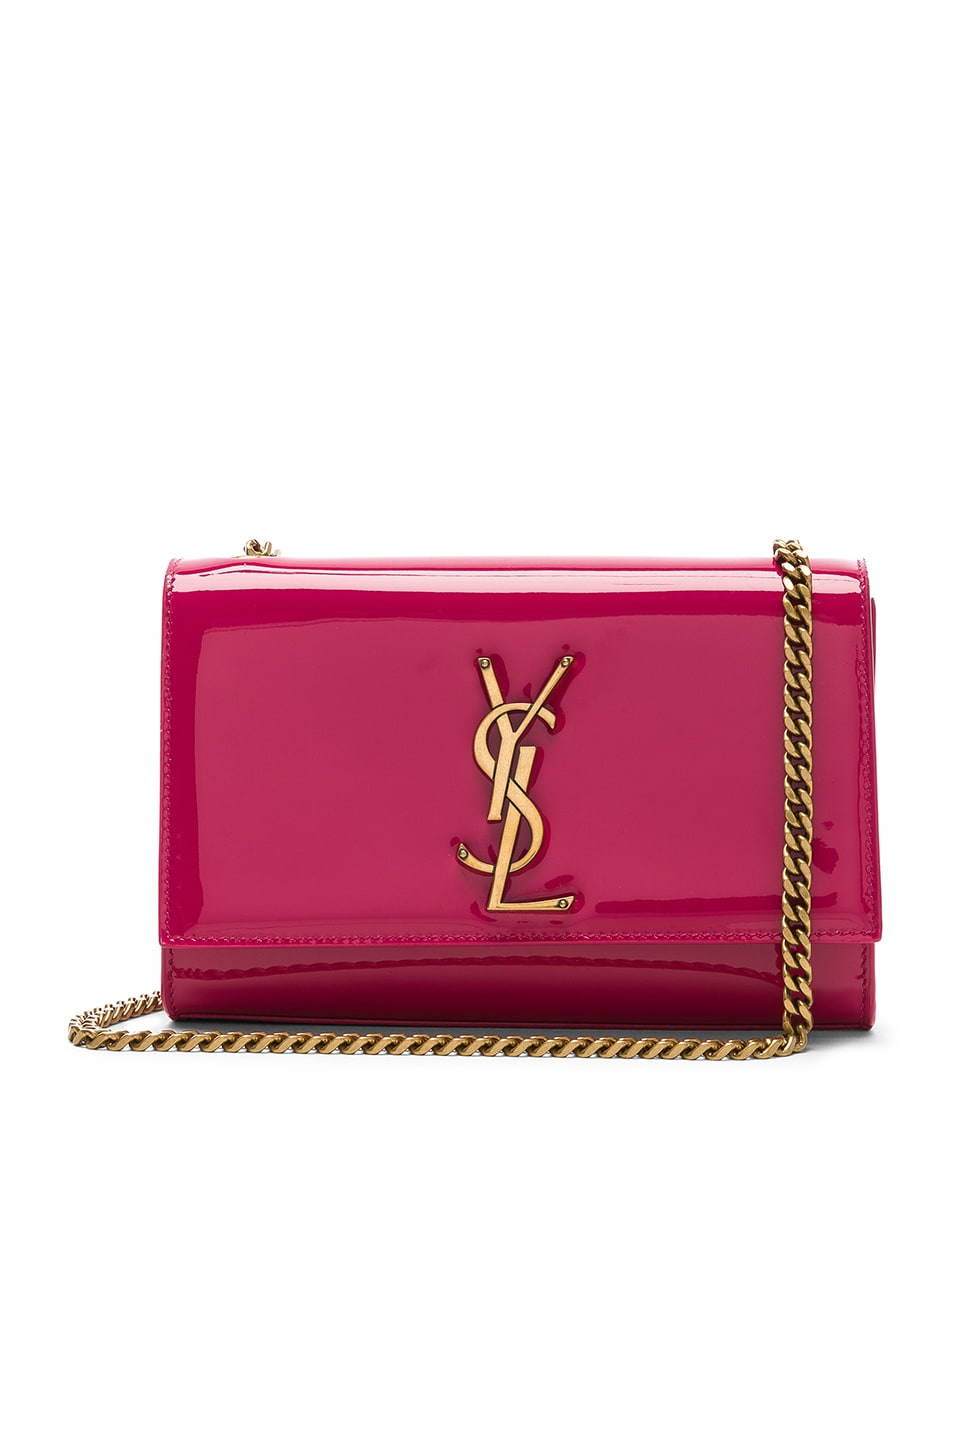 Image 1 of Saint Laurent Small Kate Monogramme Chain Bag in Shocking Pink